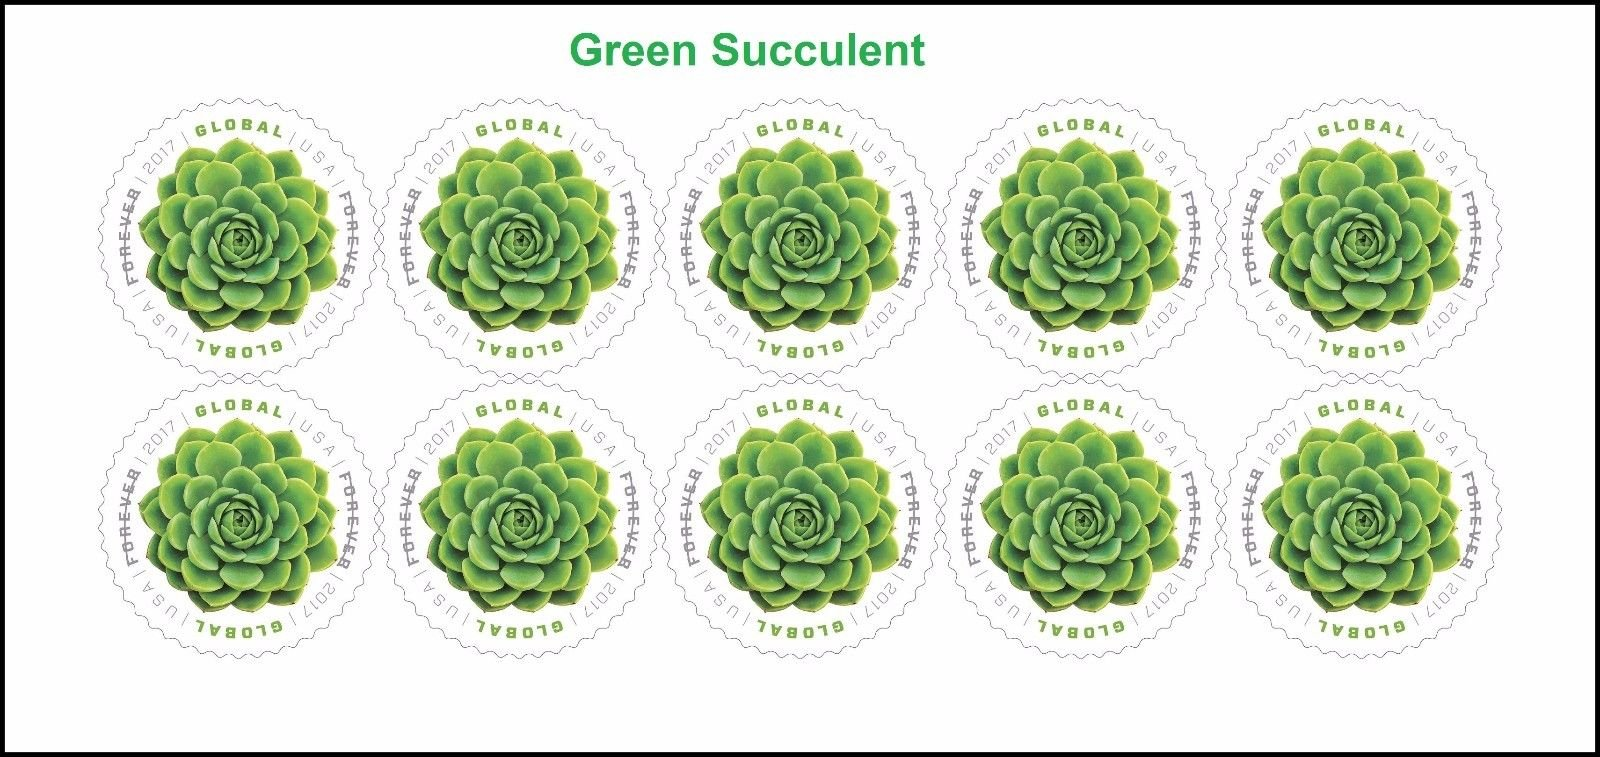 2017 Global Green Succulent International Forever Stamps Sheet of 10 Scott 5198 By USPS